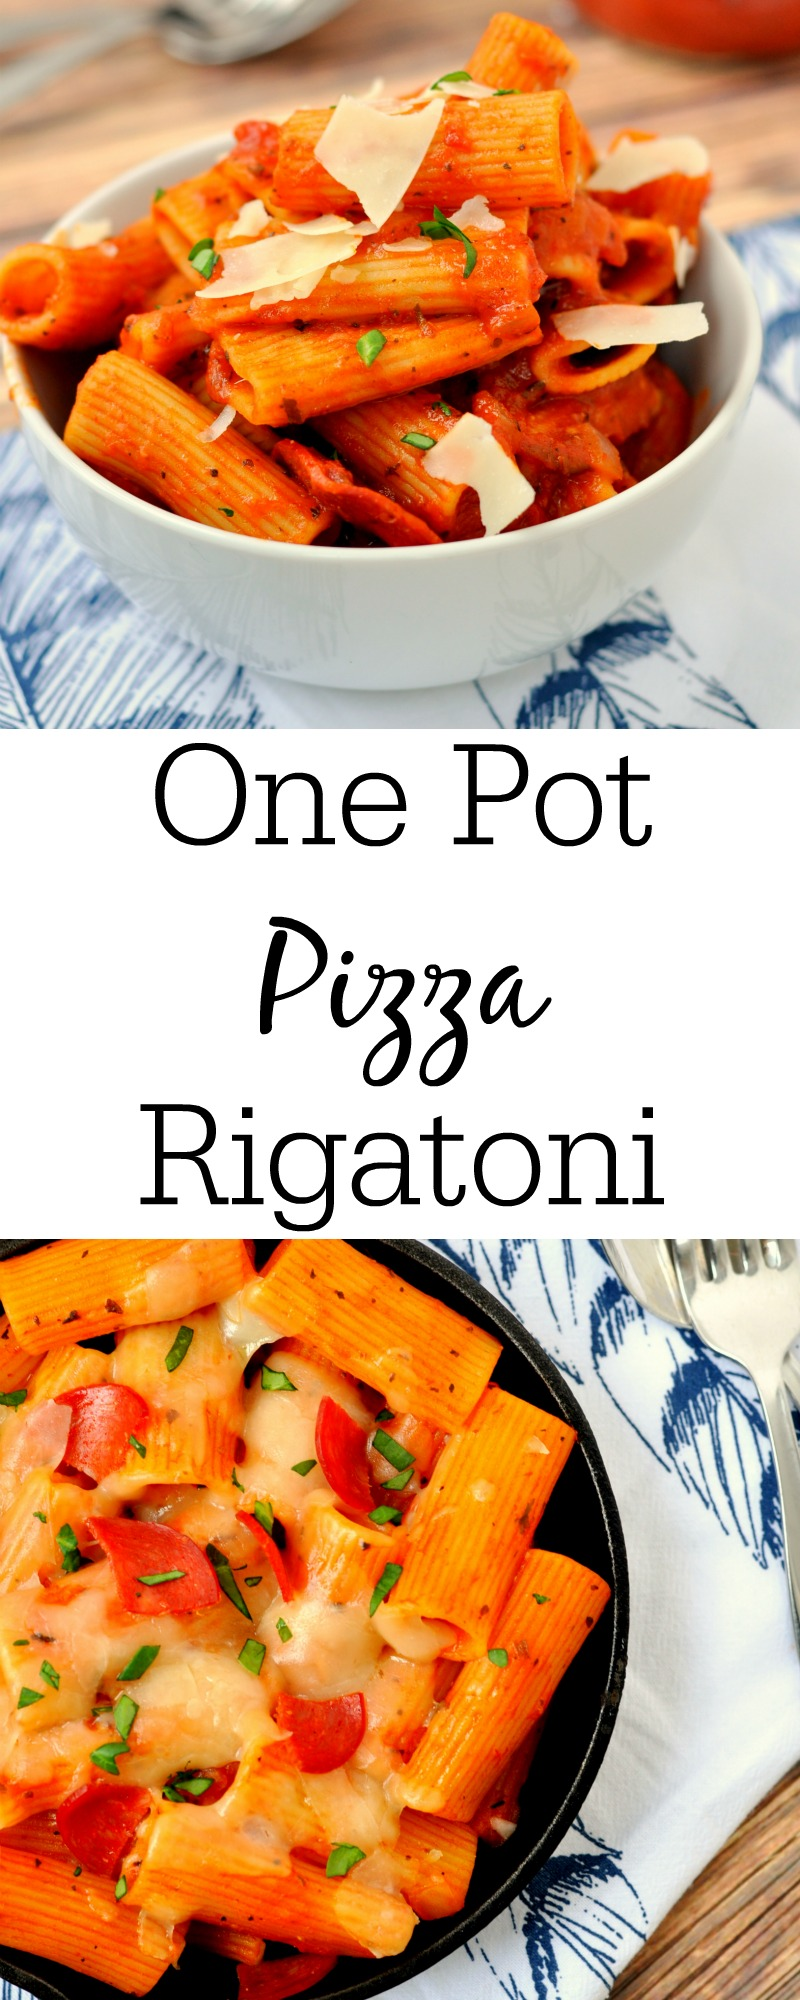 One pot pizza rigatoni is the perfect easy meal that cooks fast and tastes amazing. It will solve your dinner problem any night.